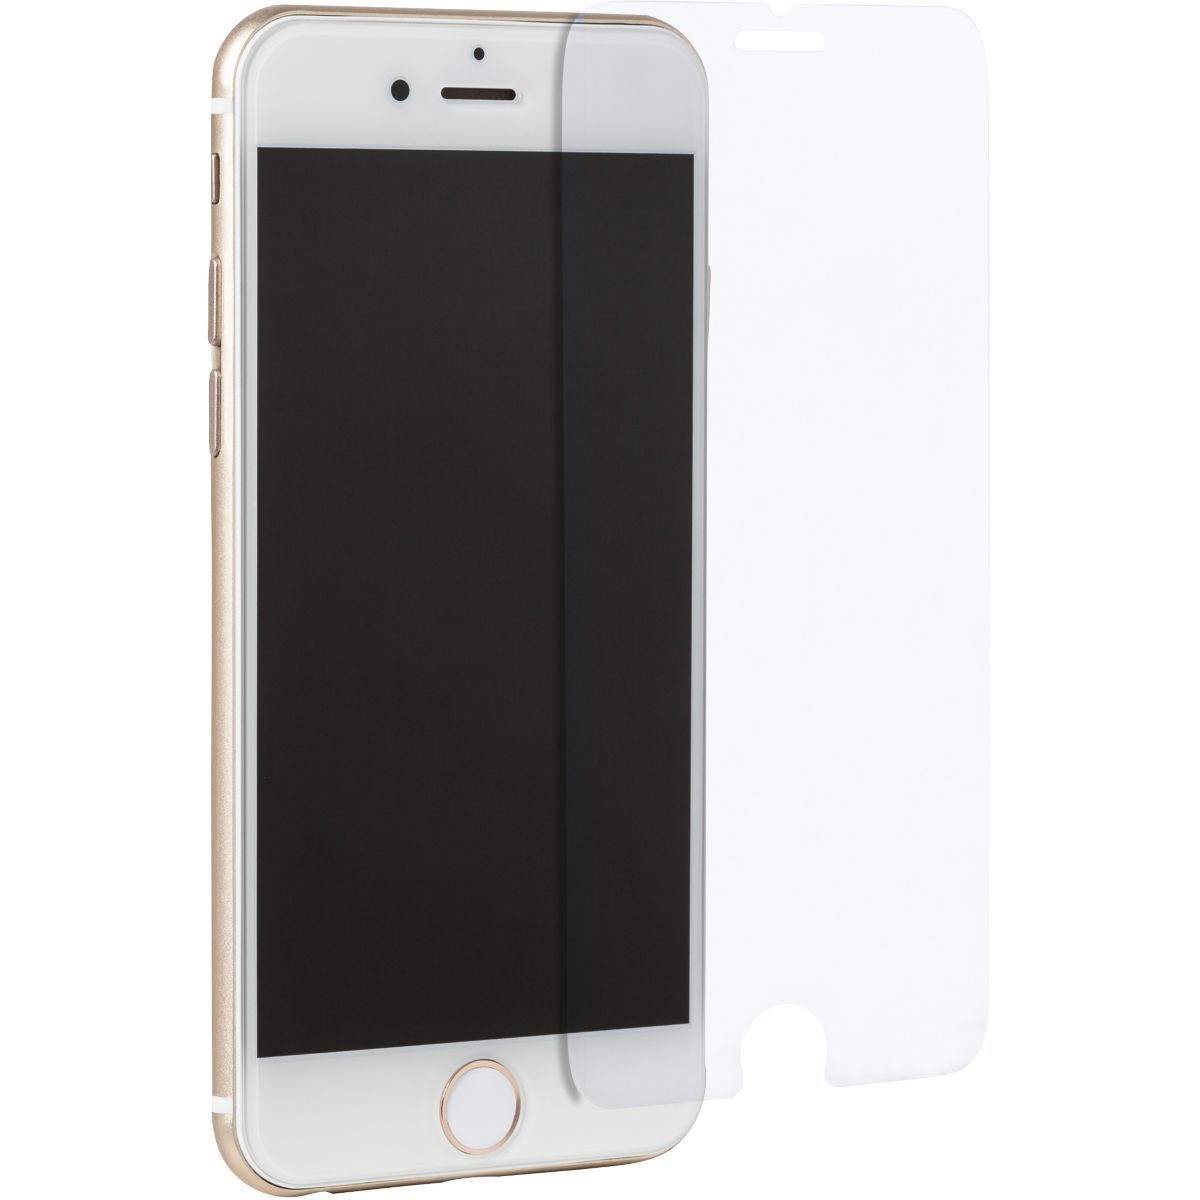 Coque + Protège écran ESSENTIELB iPhone 7/8 Coque+Verre trempé+Applicateu (photo)